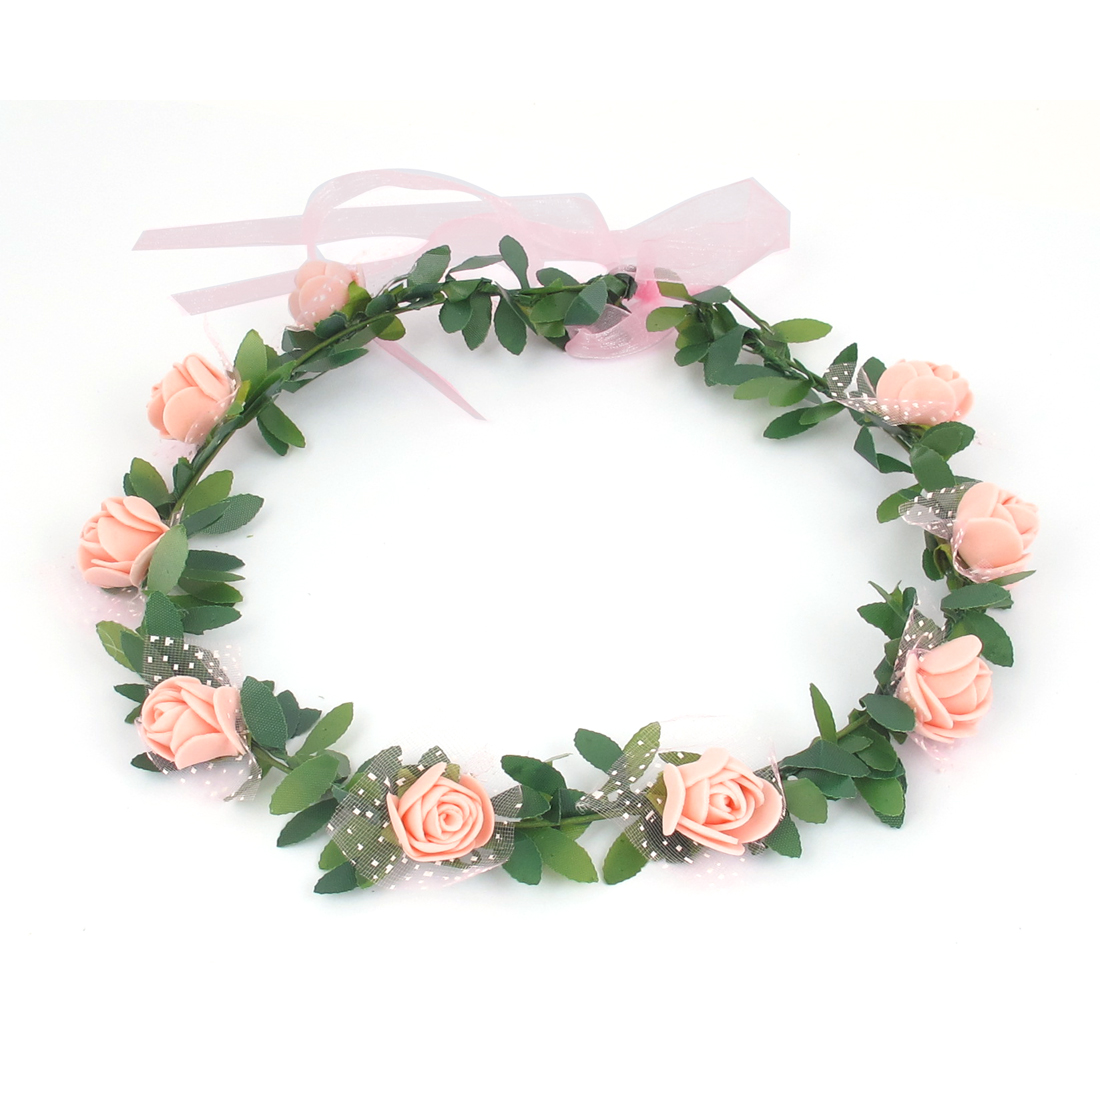 Lady Wedding Party Flower Decor Adjustable Headwear Headdress Hair Crown Wreath Light Pink